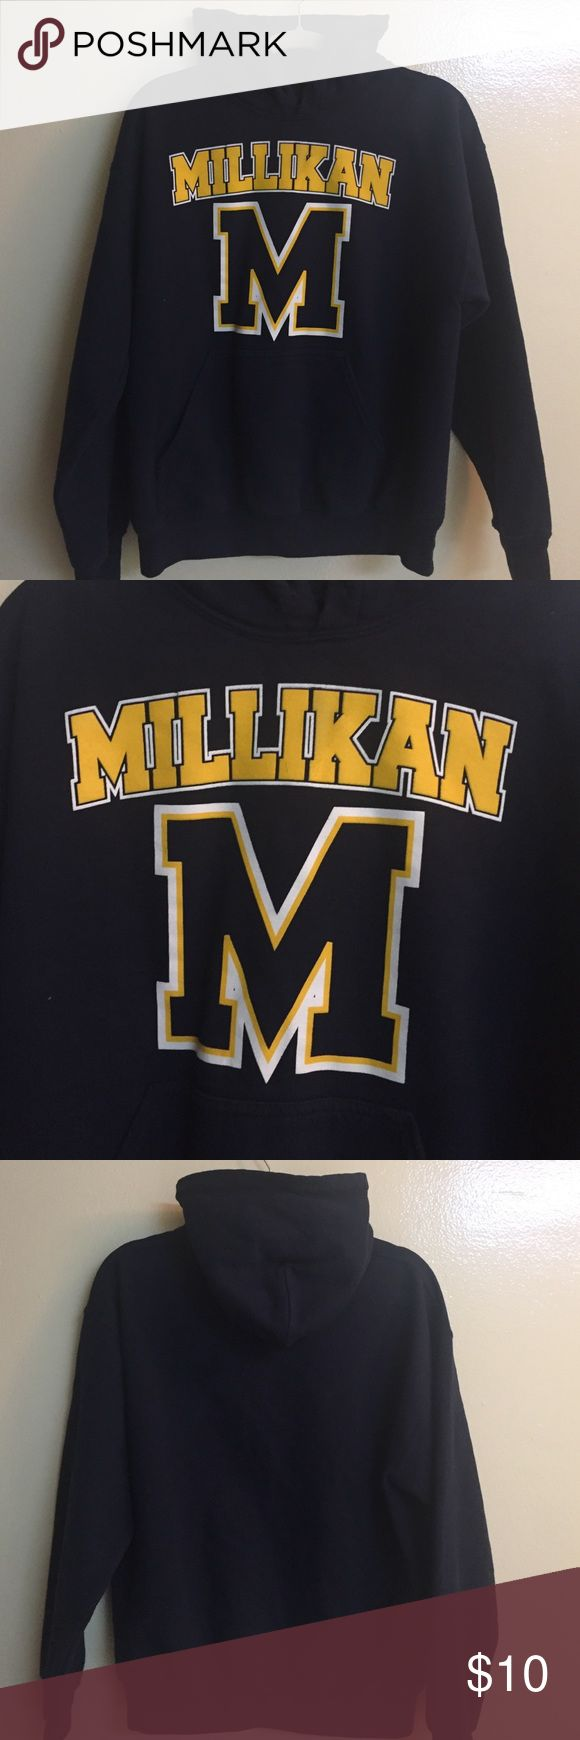 Millikan High School Navy Blue Pullover Sweatshirt This is a navy blue pullover high school sweatshirt for a school in Long Beach, California. It is like new except hood string is missing. This is super cute, soft and very warm. It is made of 50% Polyester and 50% Algodon Cotton. Gilden Tops Sweatshirts & Hoodies